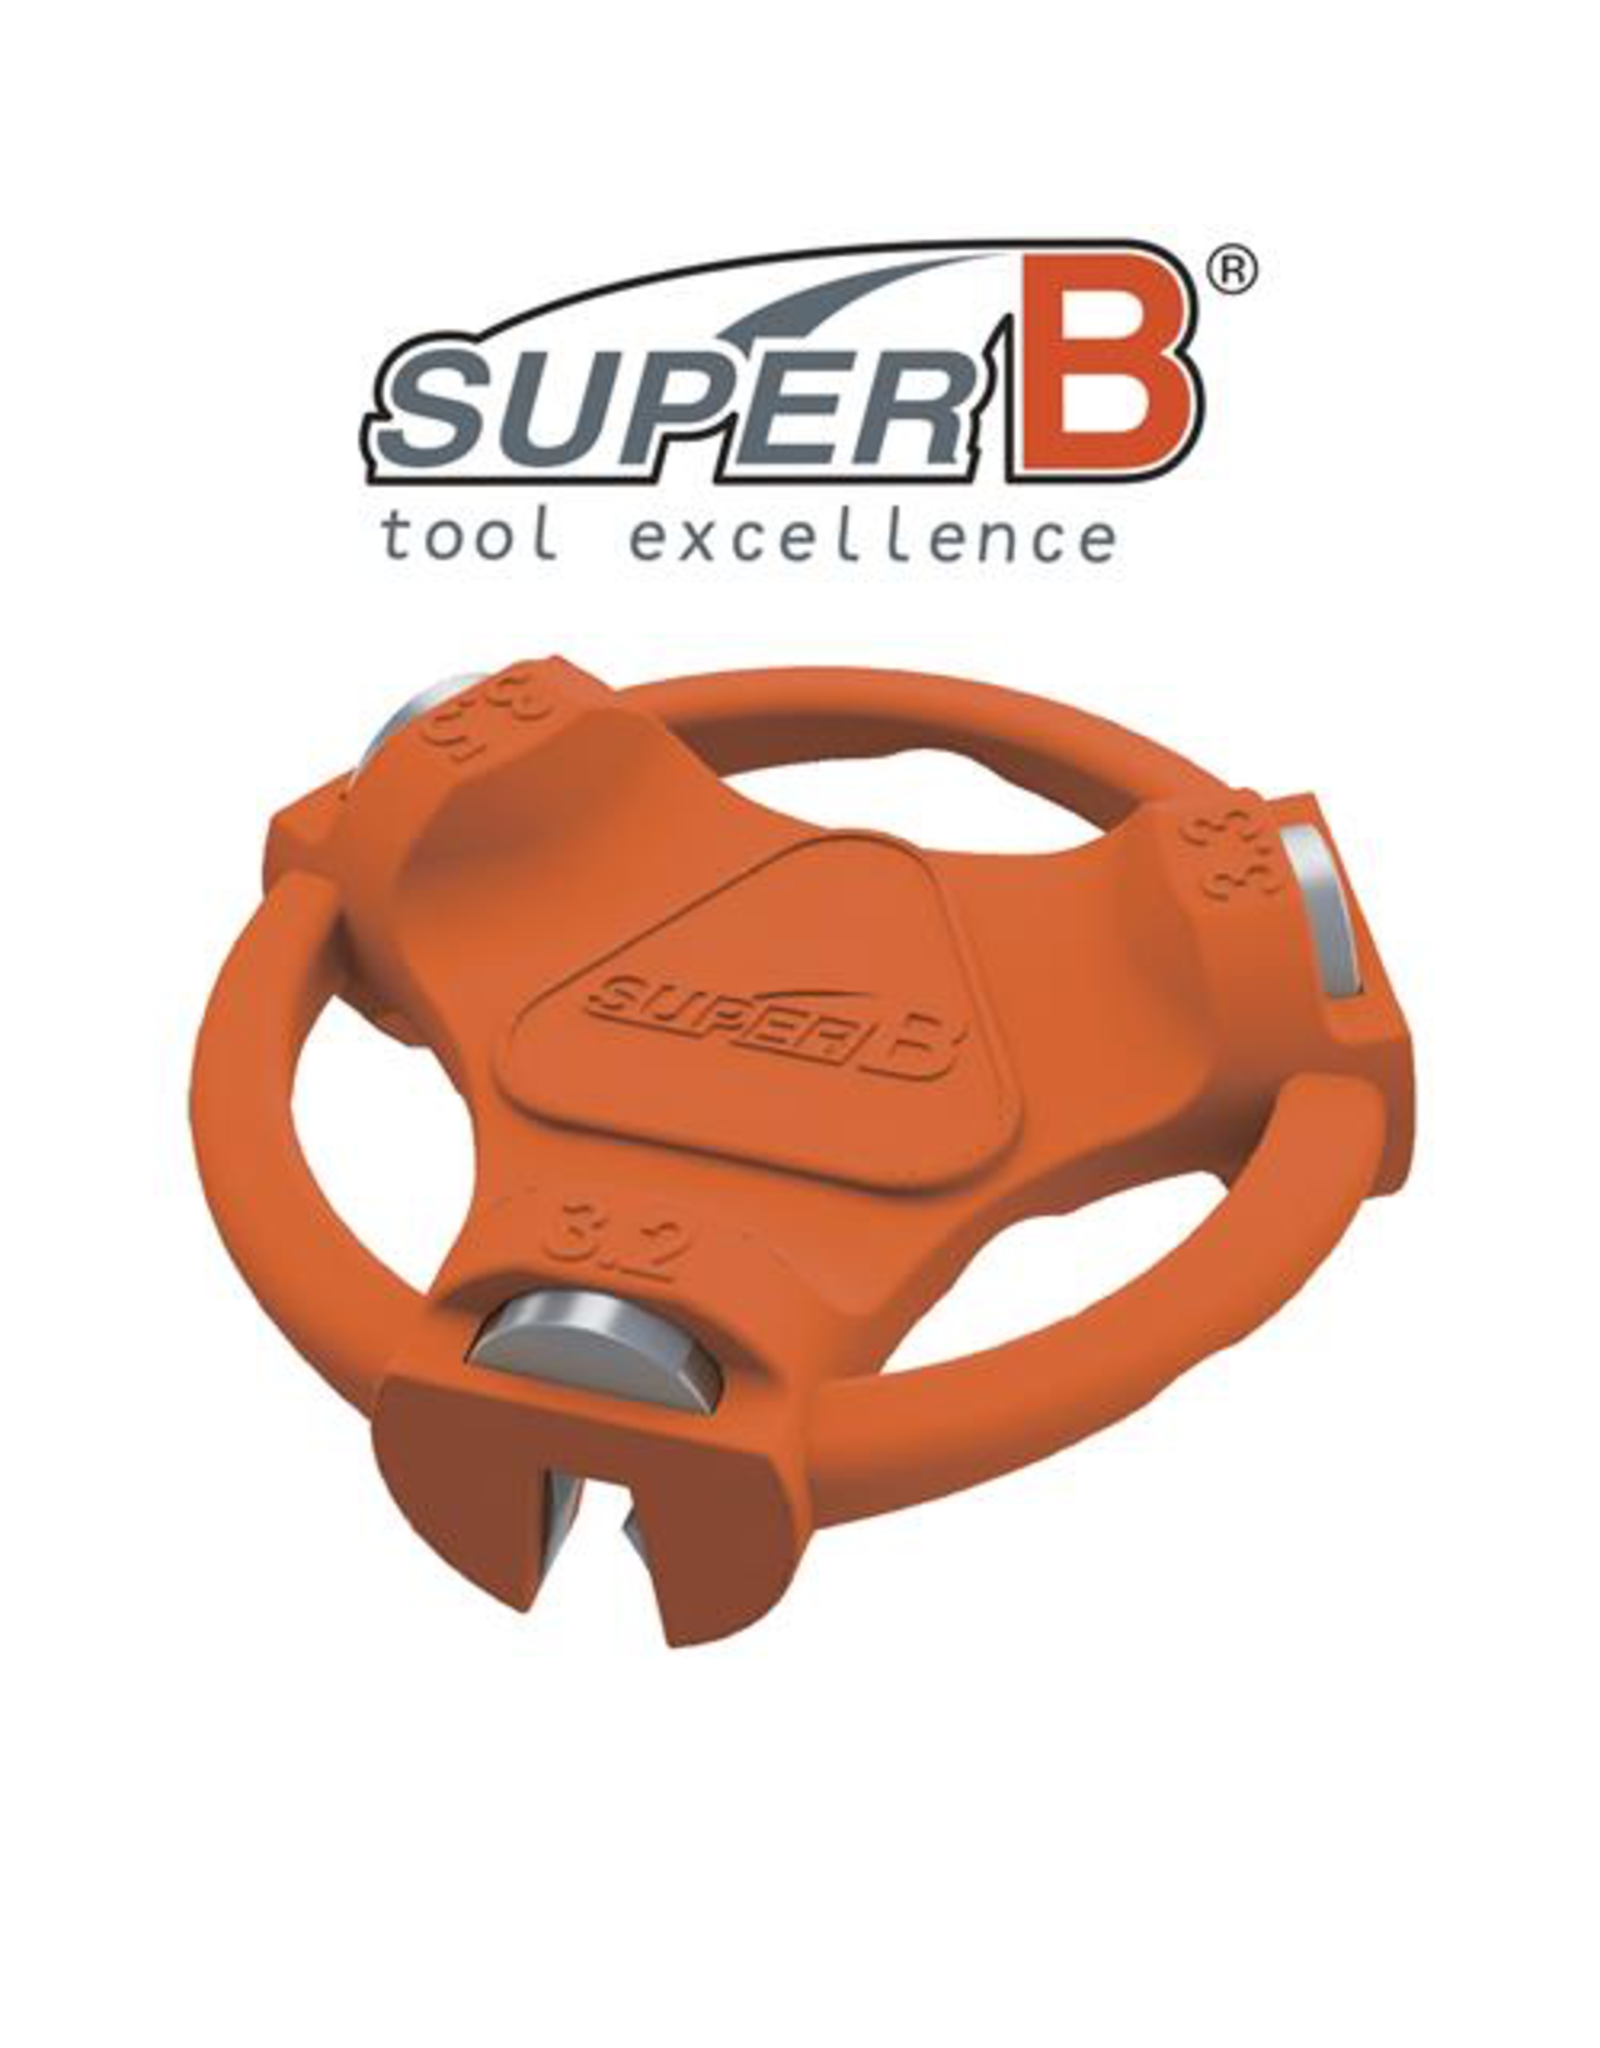 SUPER-B SUPER-B CLASSIC SPOKE WRENCH MULTI 3.2, 3.3 & 3.5MM TOOL